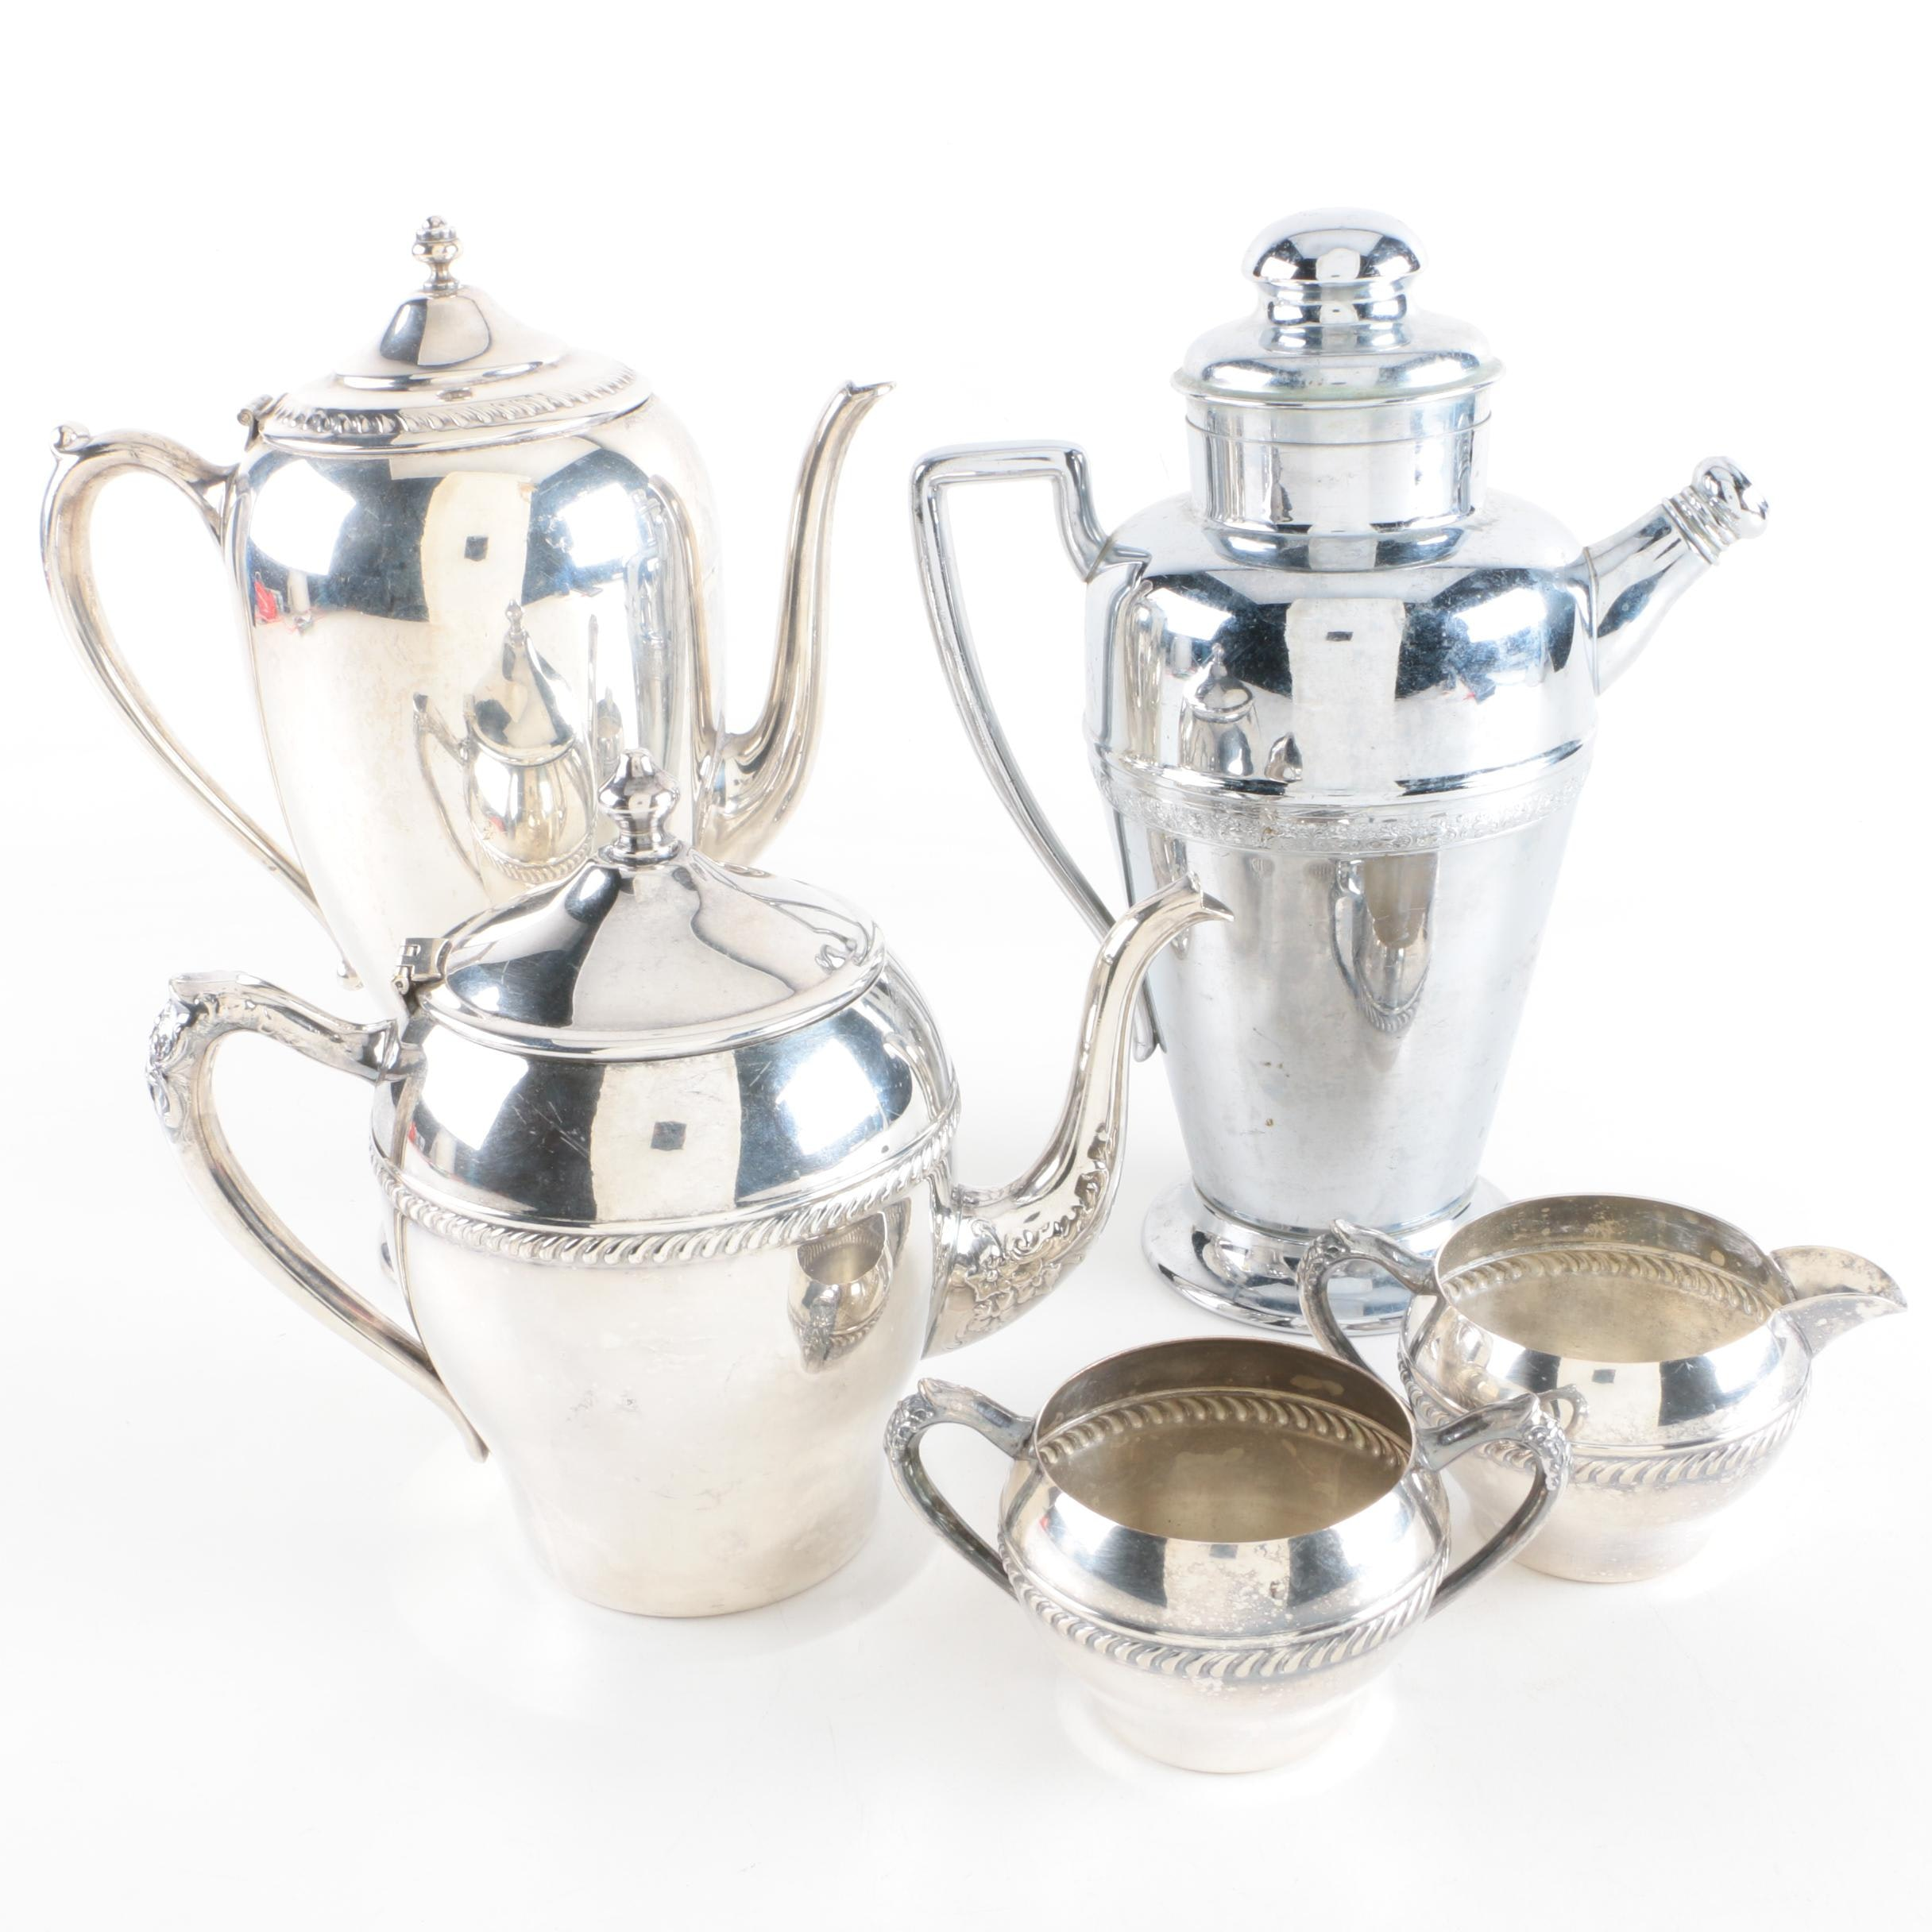 Silver Plate and Stainless Steel Serveware Featuring Forbes